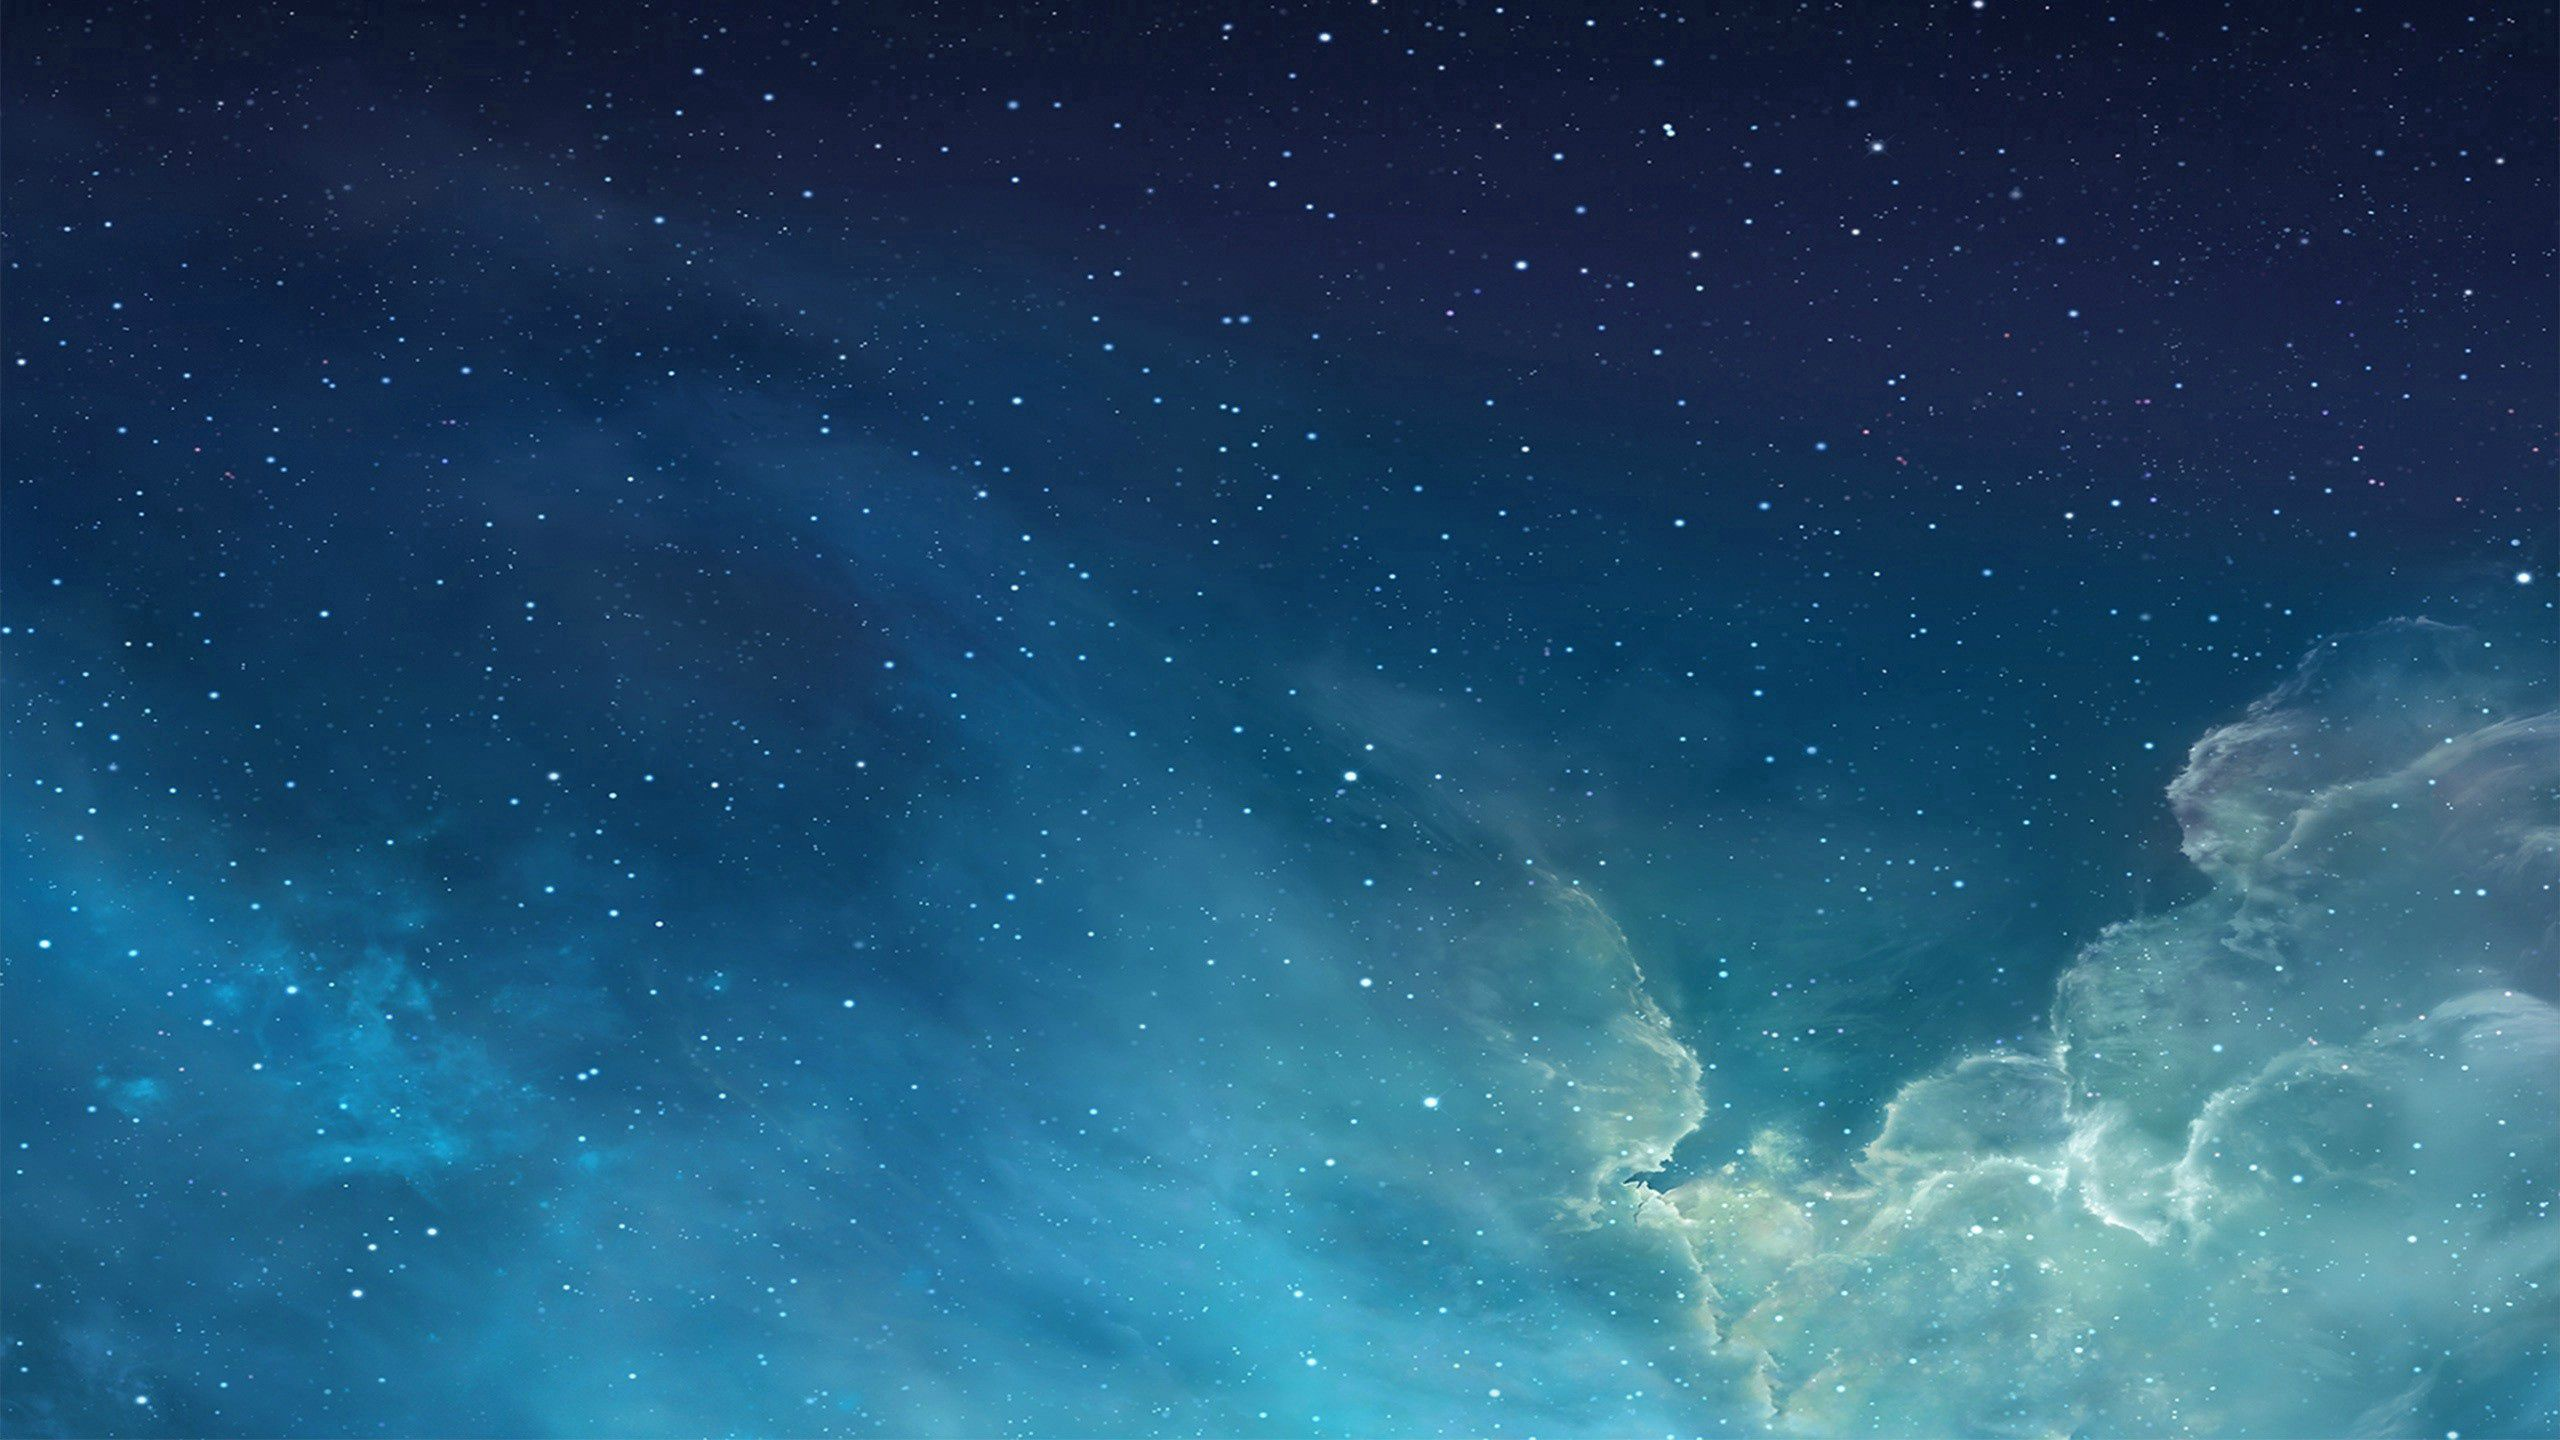 101848 download wallpaper Abstract, Sky, Clouds, Stars screensavers and pictures for free